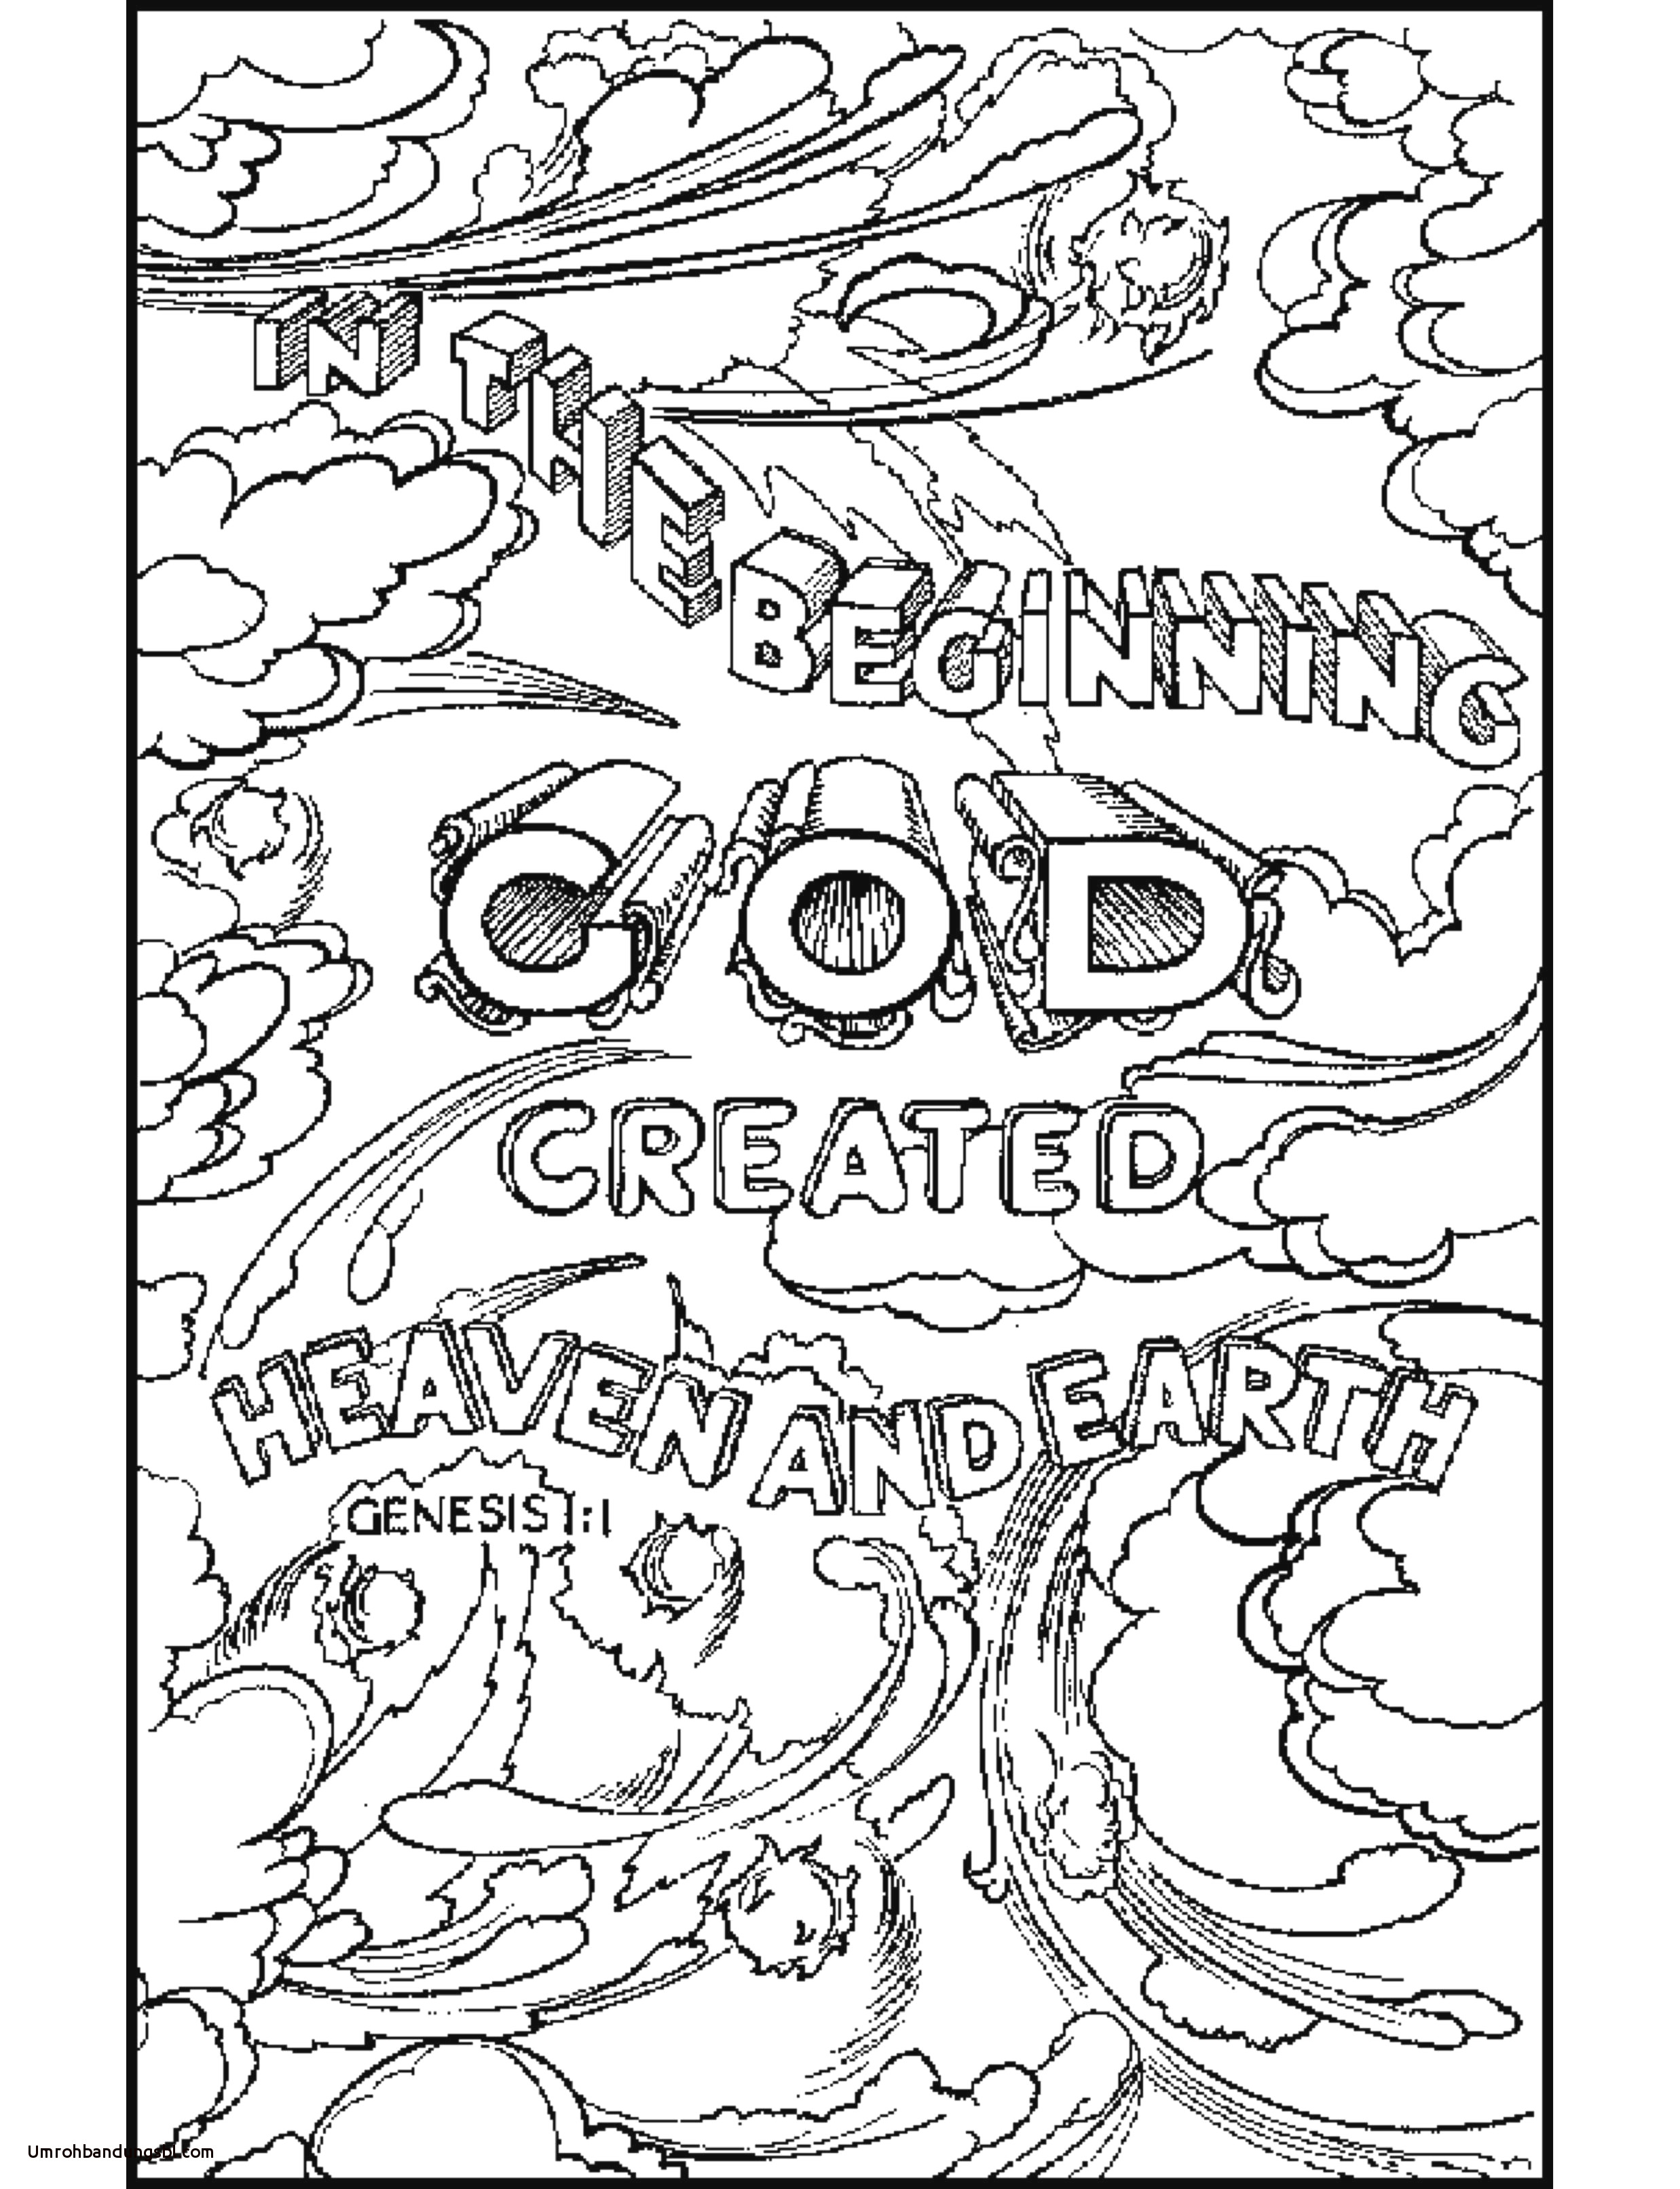 28 7 Days Of Creation Coloring Pages Free Gallery - Coloring ...